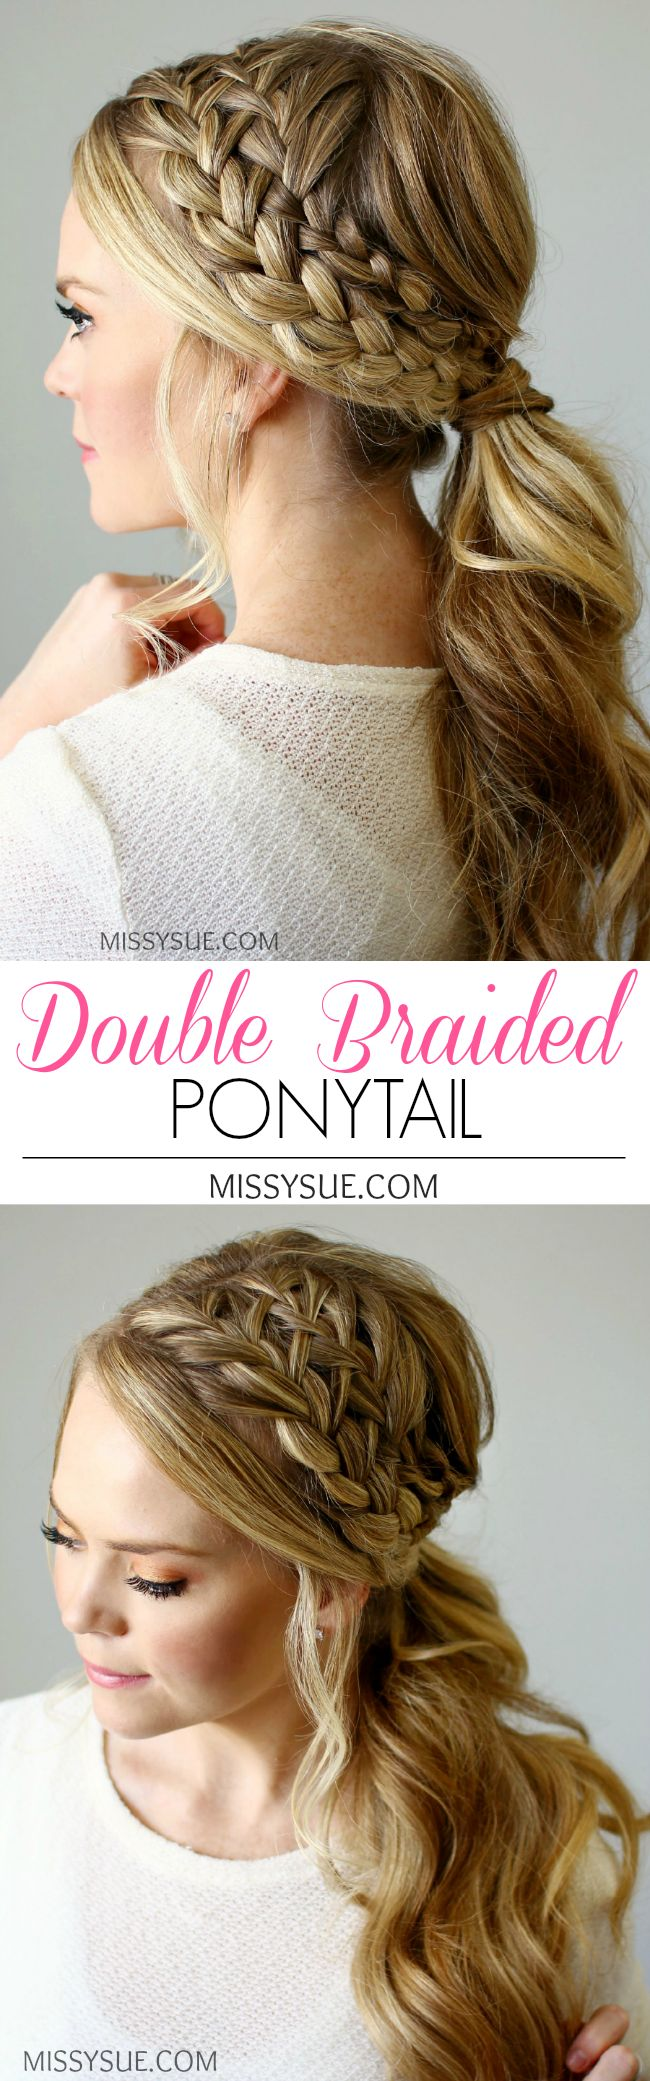 Admirable 1000 Ideas About Easy Braided Hairstyles On Pinterest Types Of Short Hairstyles For Black Women Fulllsitofus